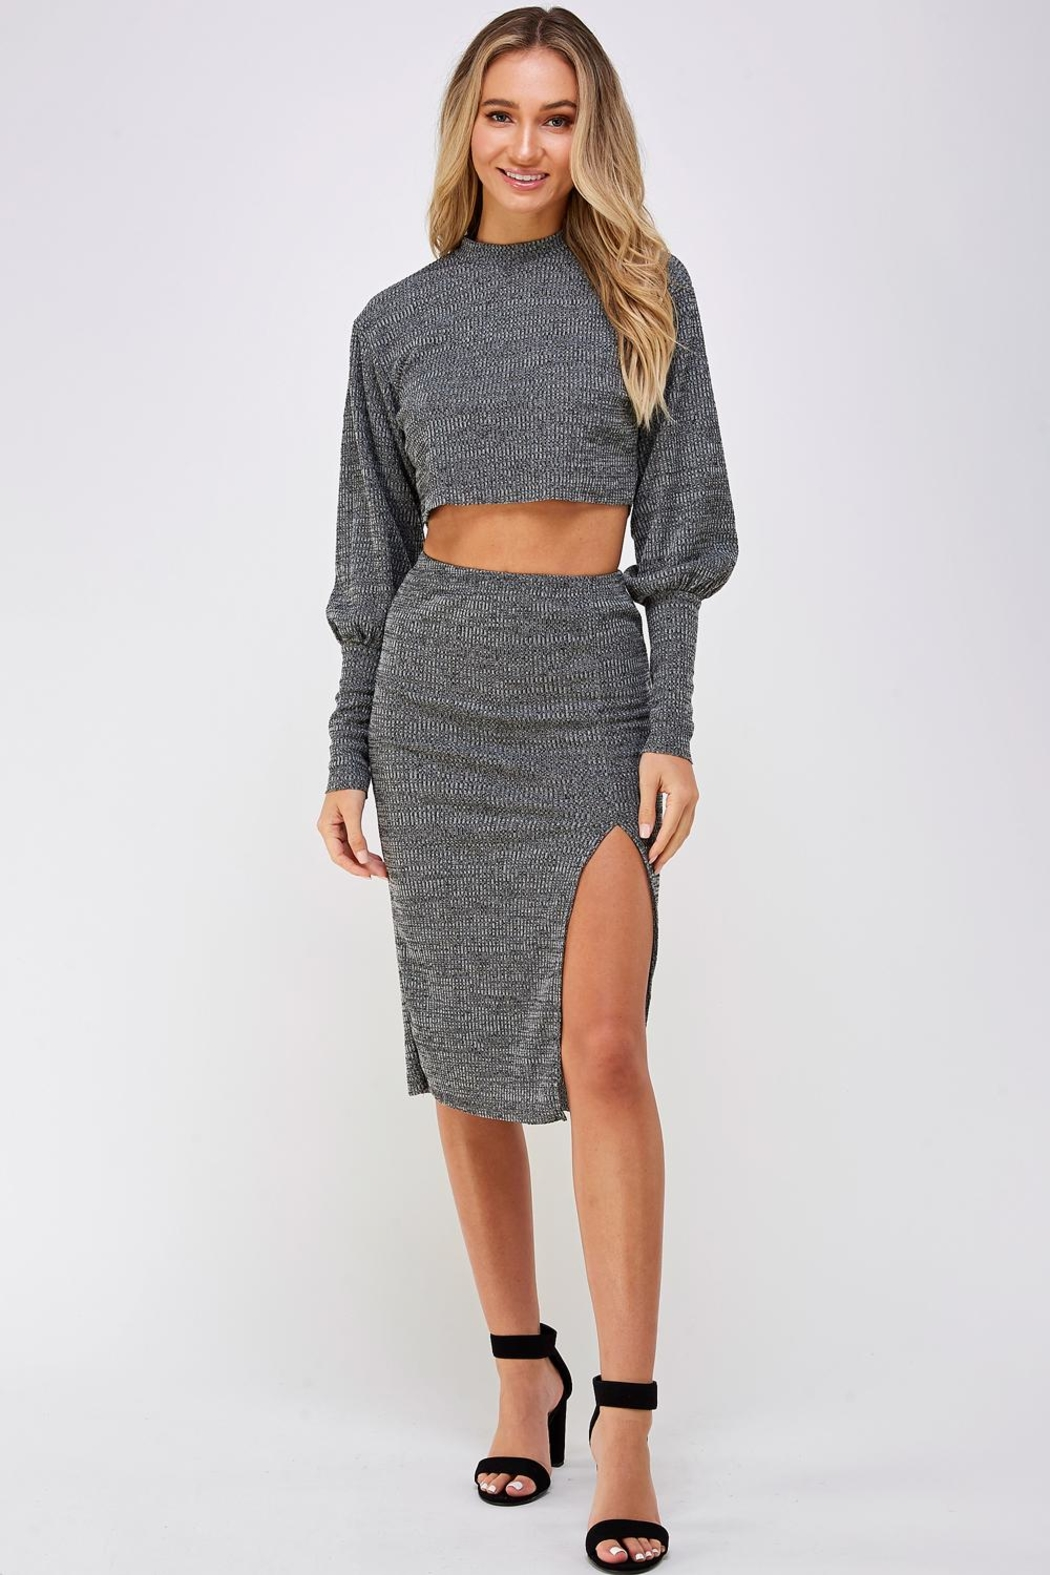 hers and mine Grey Skirt Set - Front Full Image